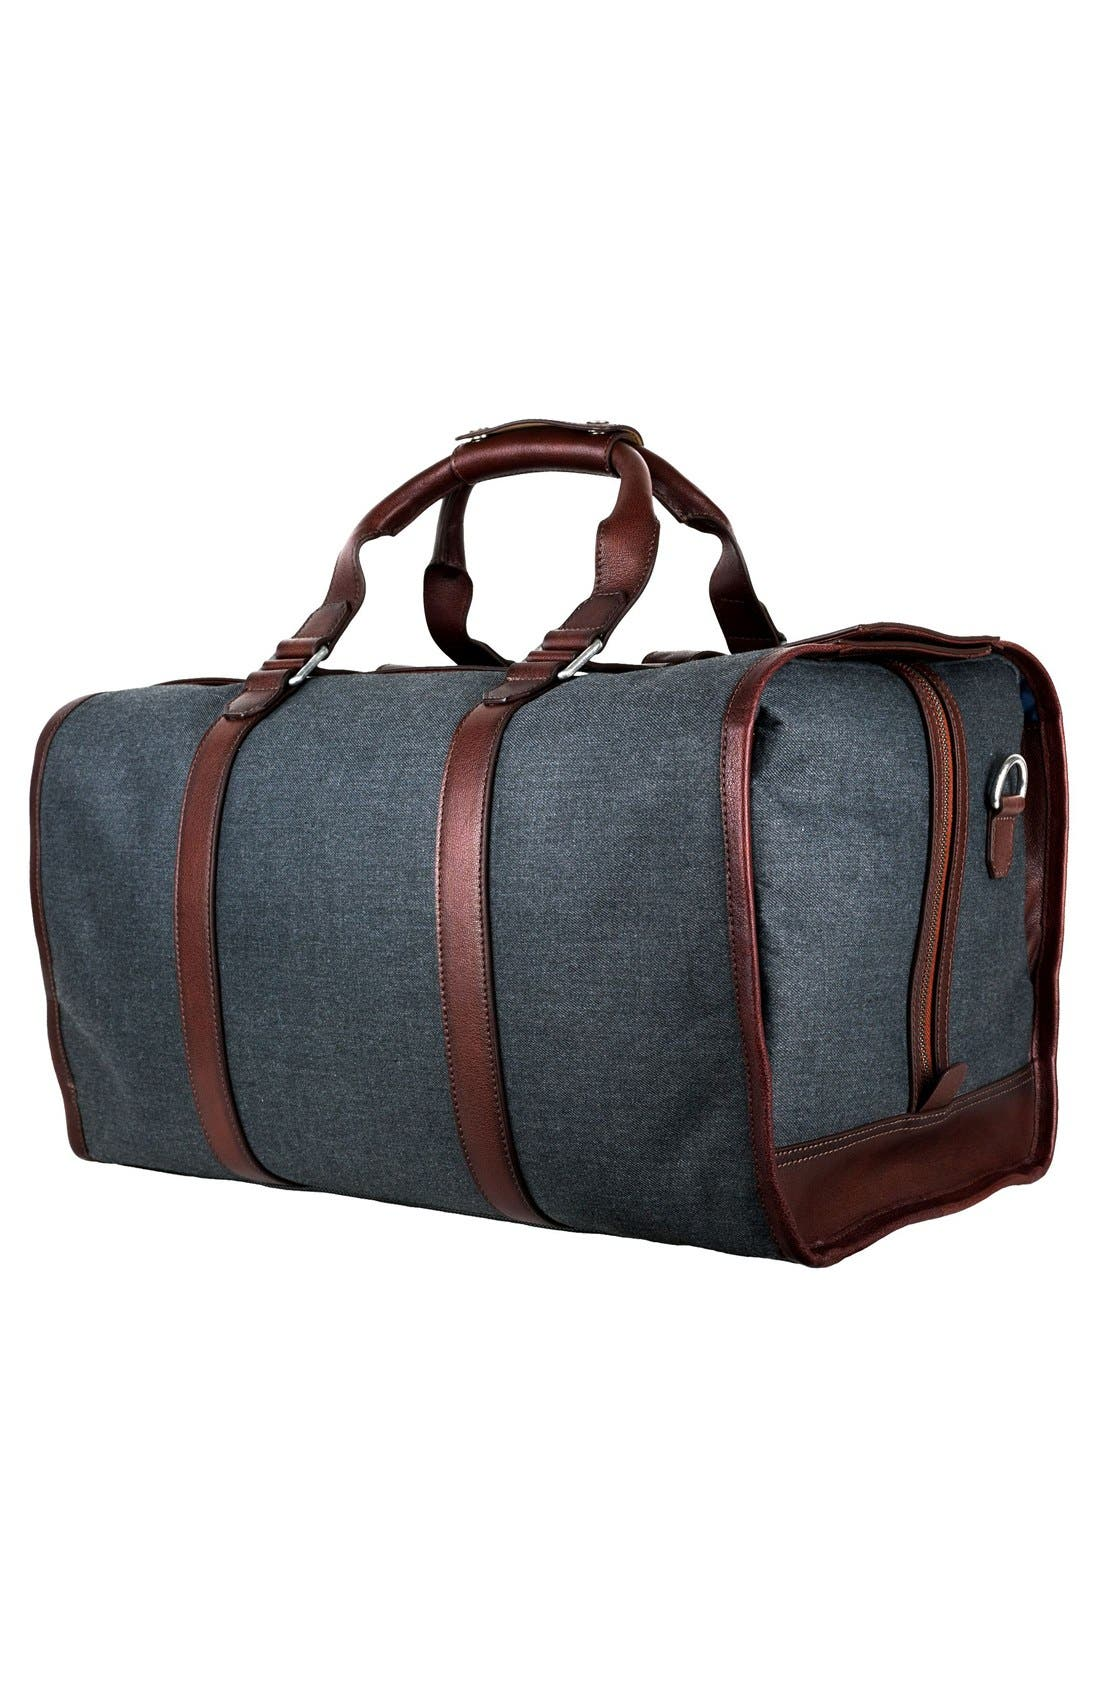 'Grafton' Duffel Bag,                             Alternate thumbnail 3, color,                             020